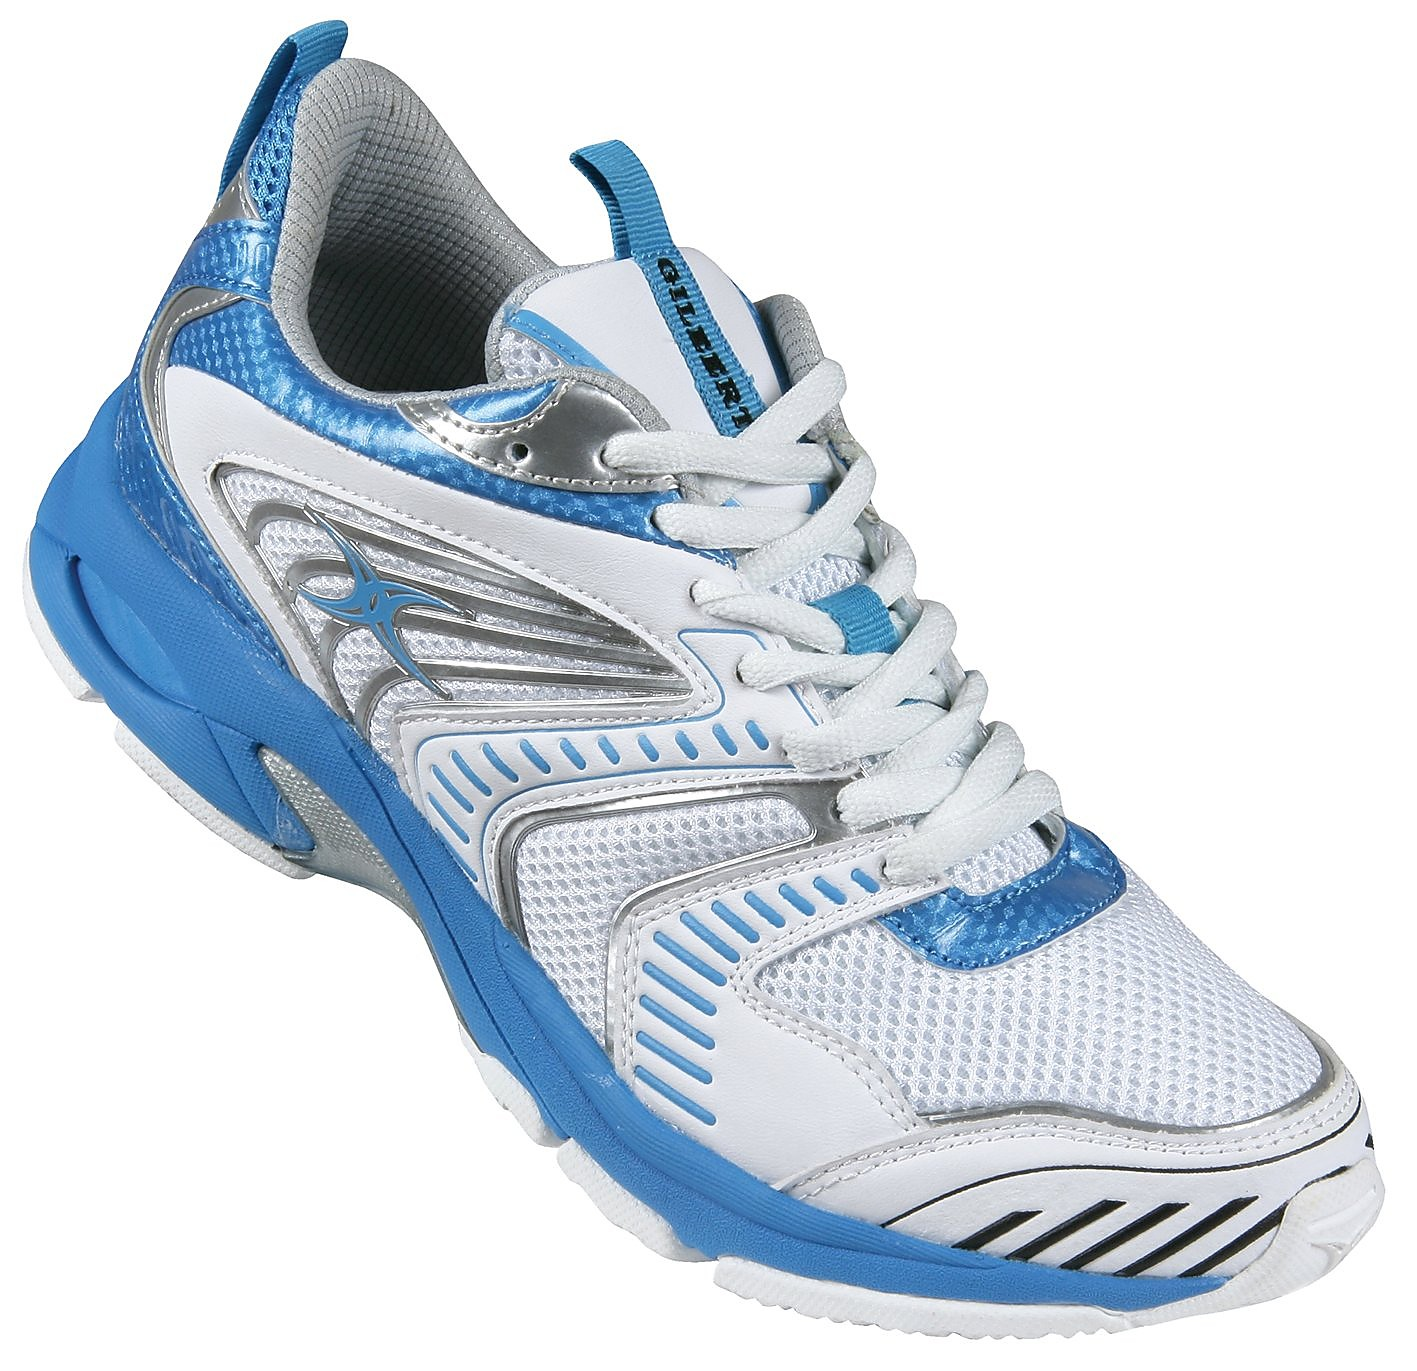 Gilbert Elite Netball Shoe